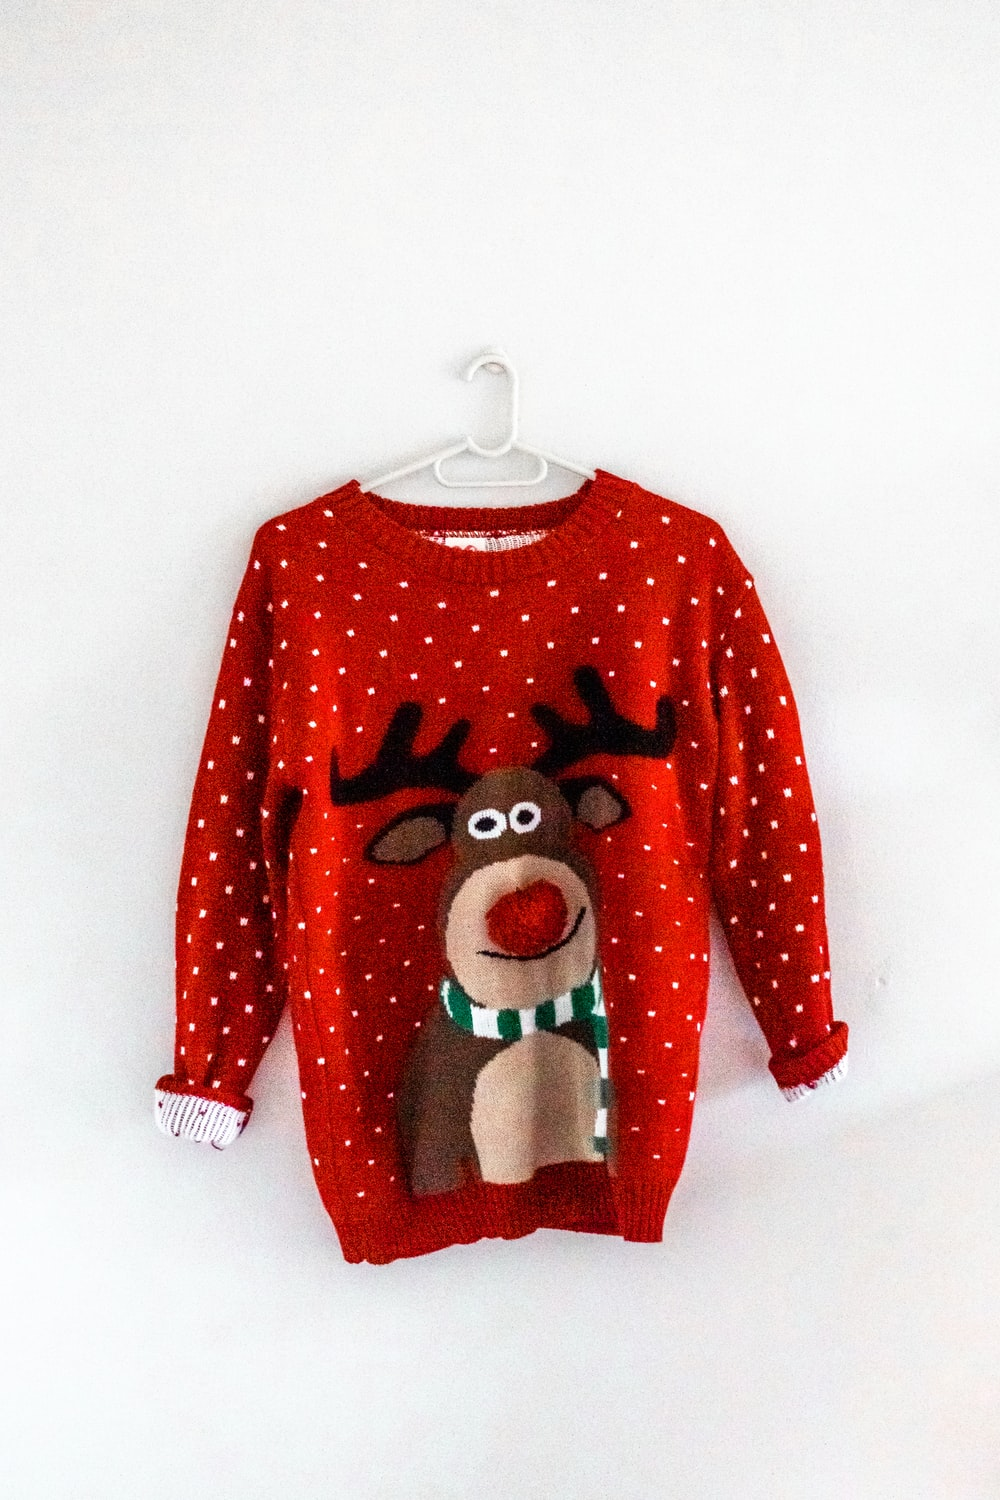 red and white mickey mouse sweater